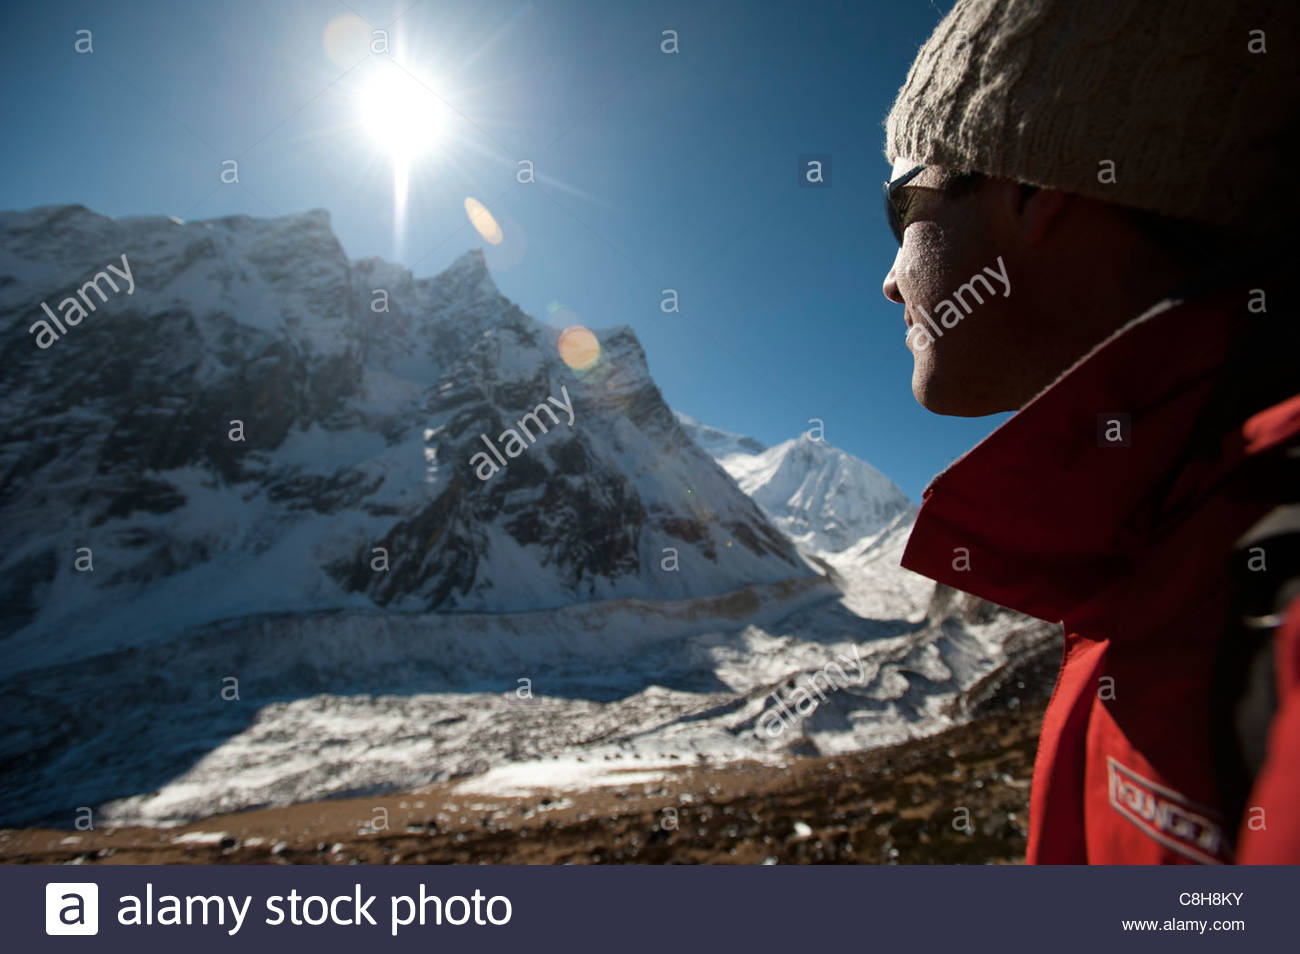 A trekker stops and admires the view of a glacier on the Manaslu trek. - Stock Image